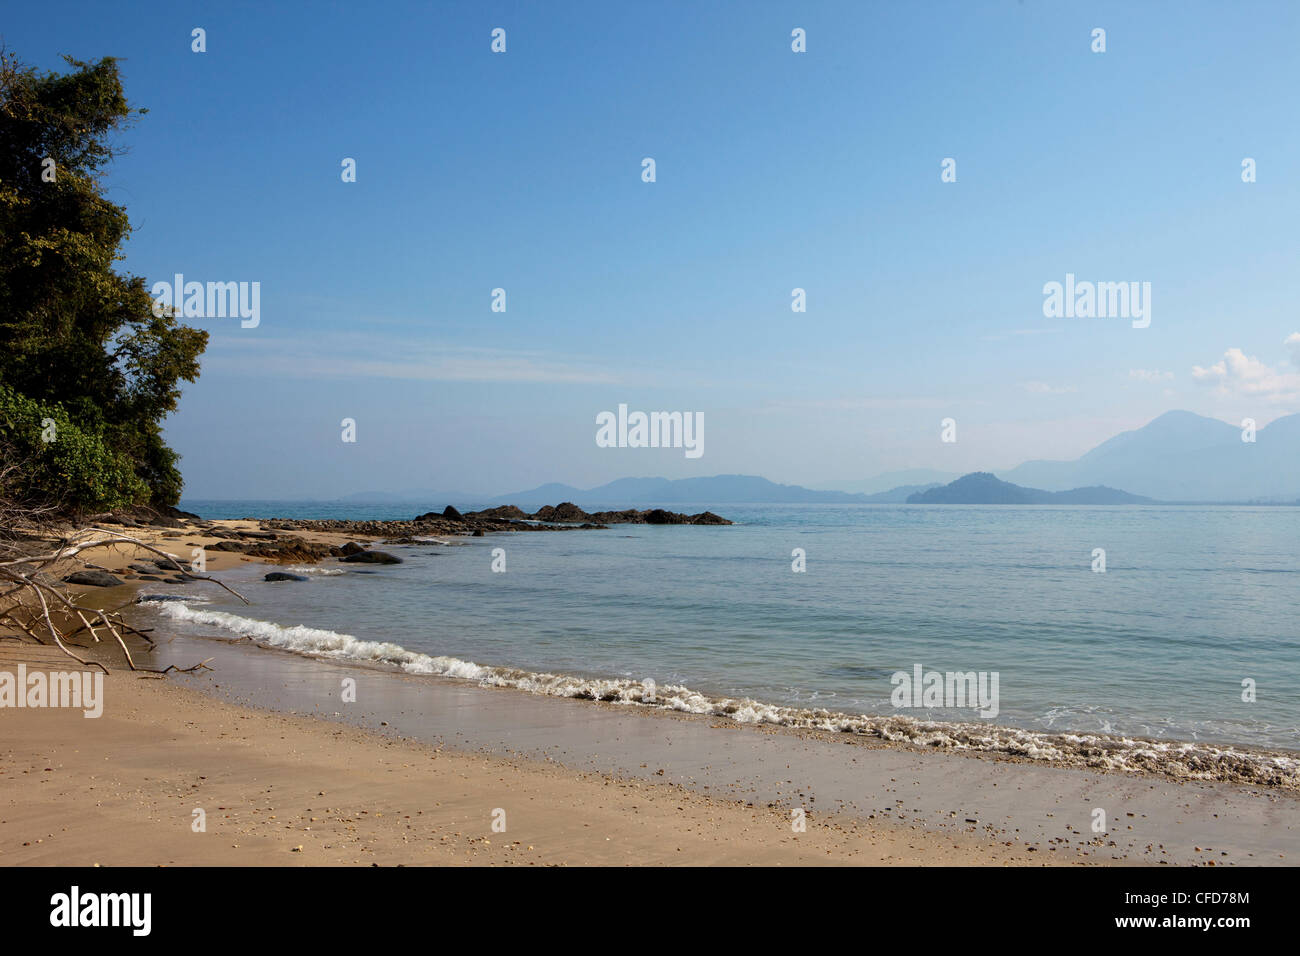 Beach of Koh Ra eco lodge with a view over to the mainland, Koh Ra, Andaman Sea, Thailand - Stock Image